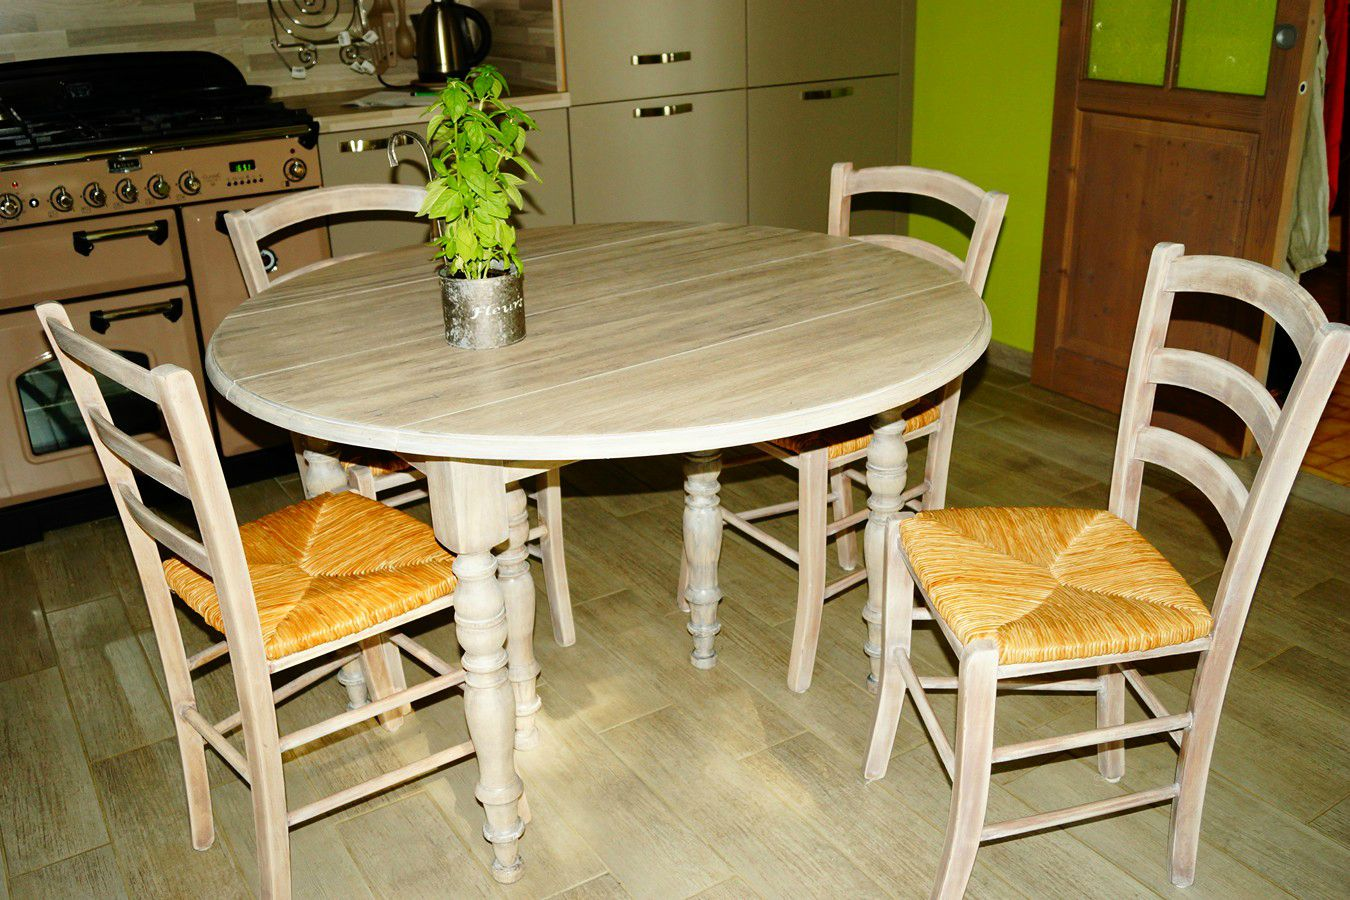 Table chaises de cuisine inspiration nordique for Chaise table de cuisine